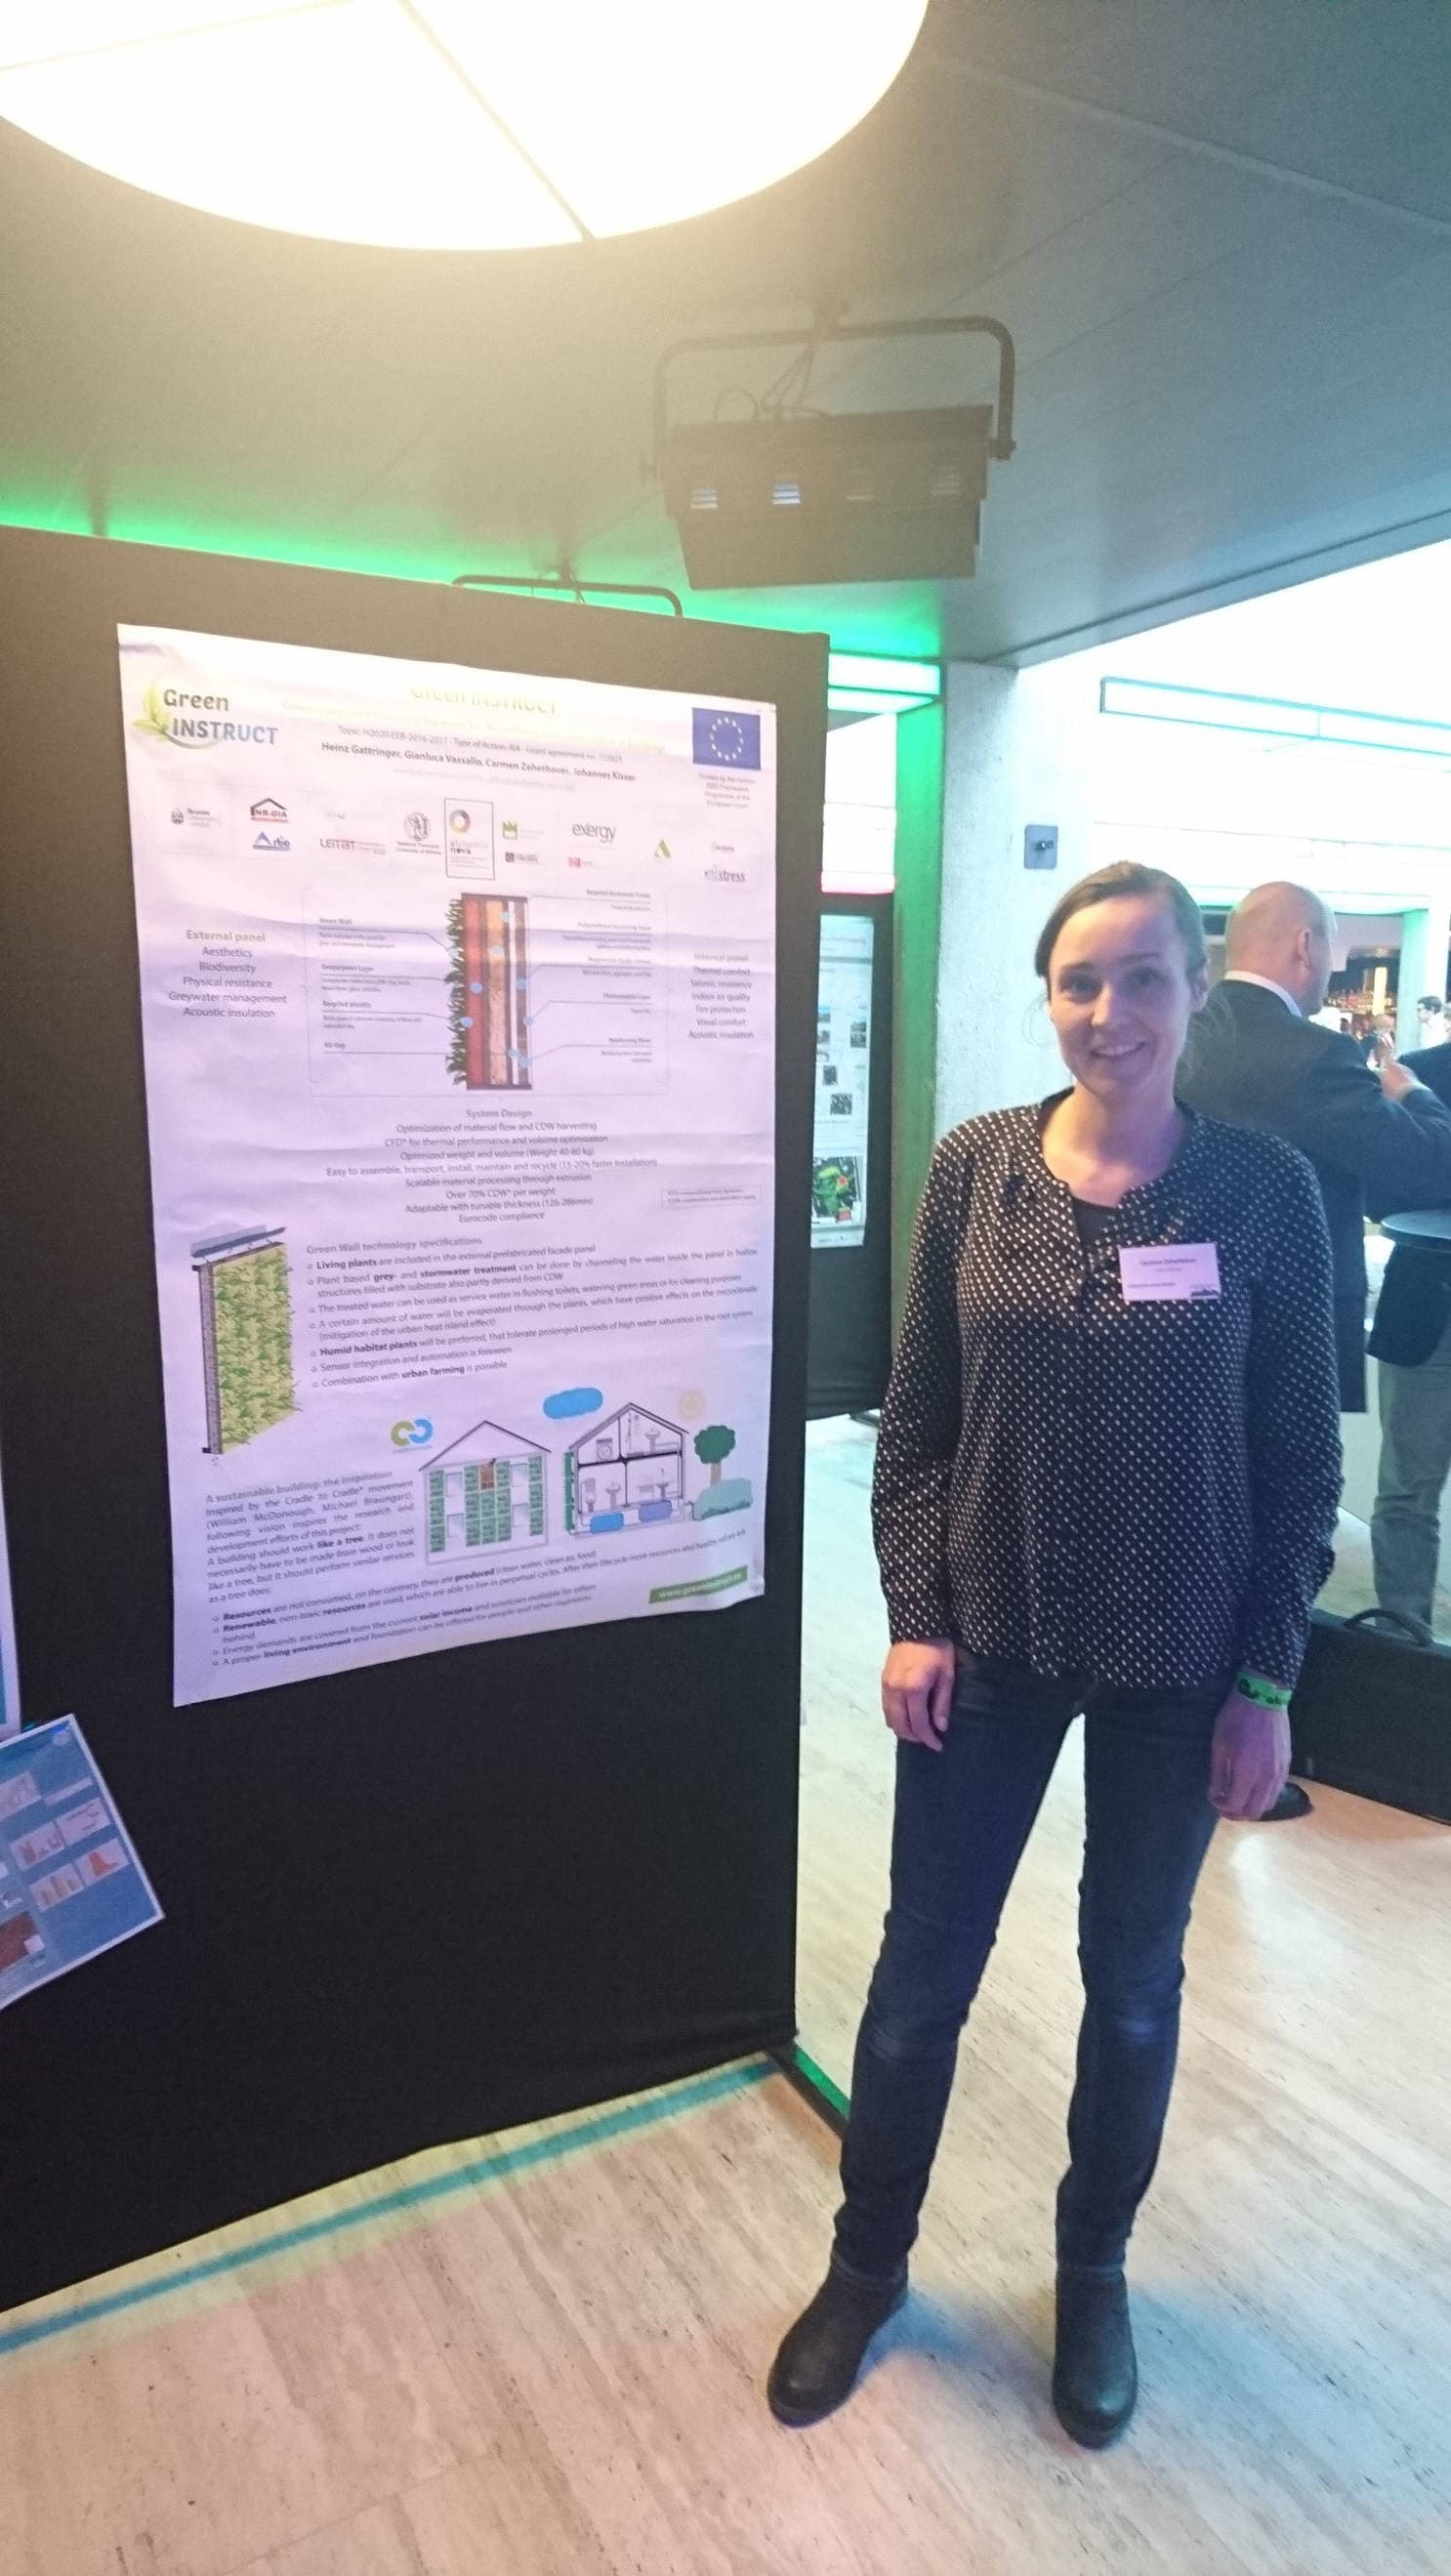 Green INSTRUCT presented at the European Urban Green Infrastructure